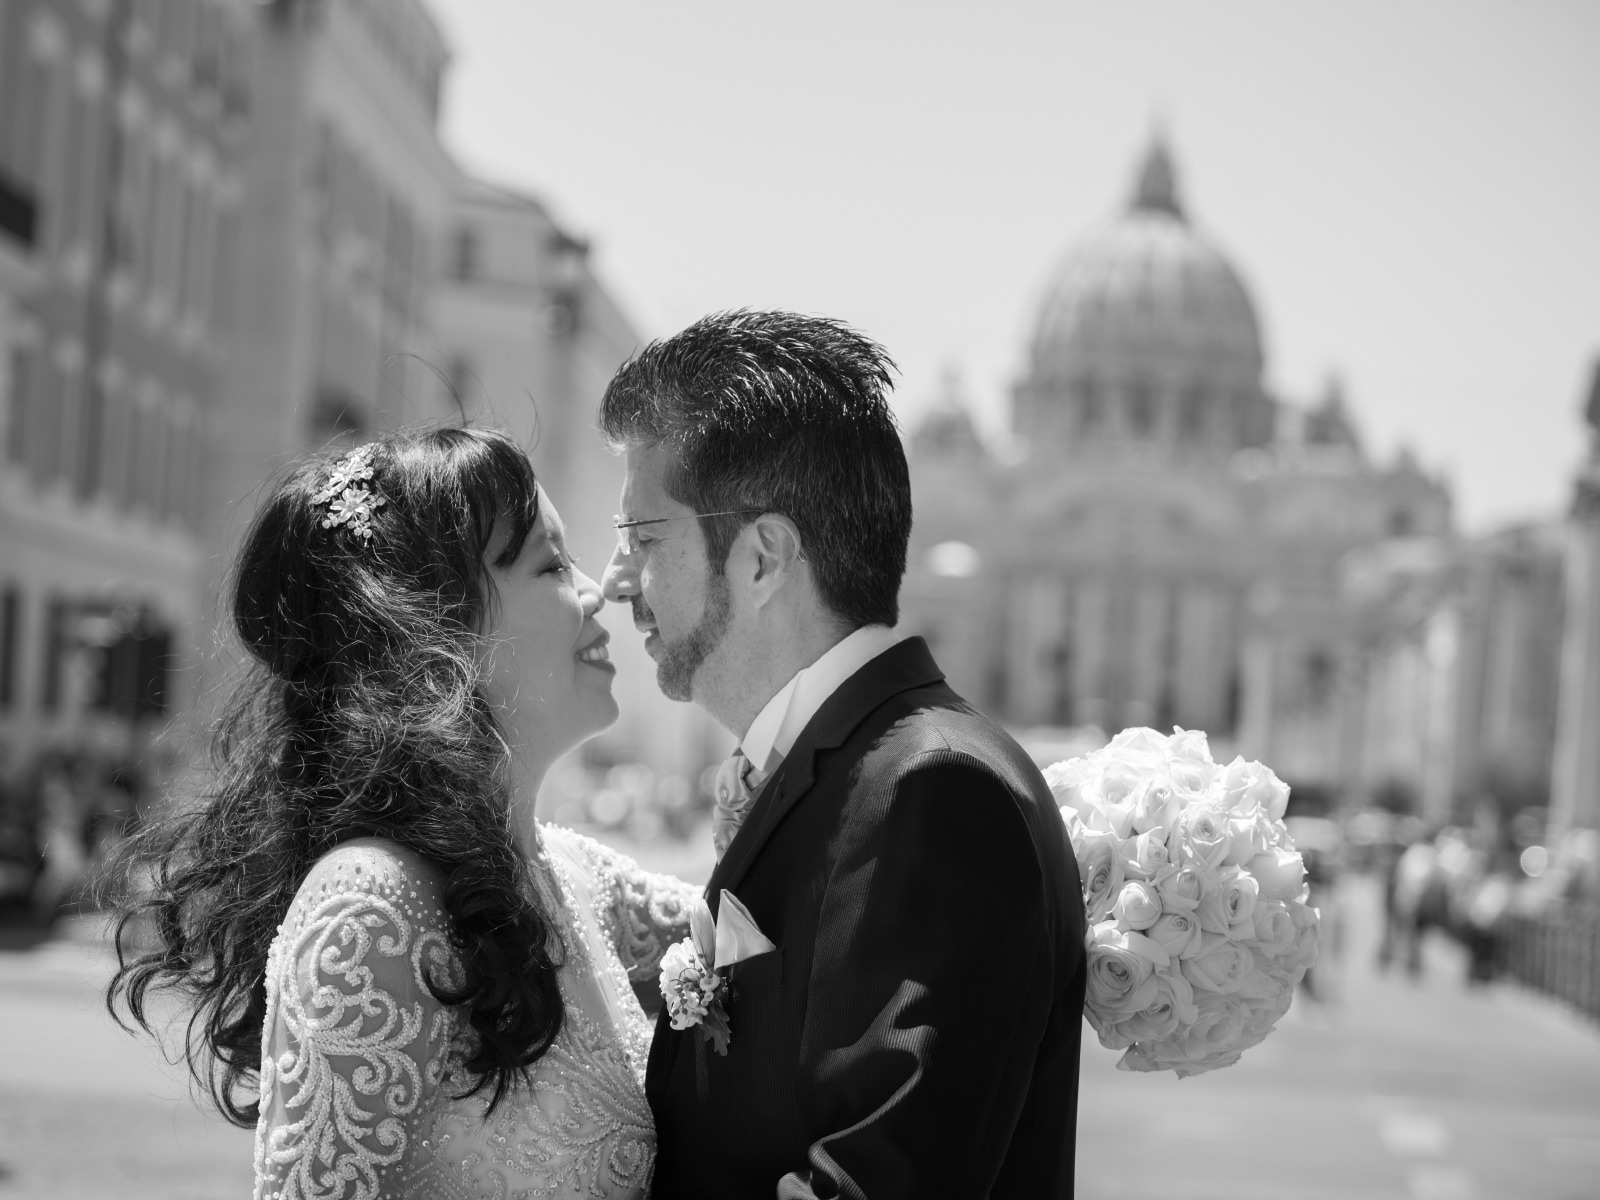 Wedding at the Vatican in Rome